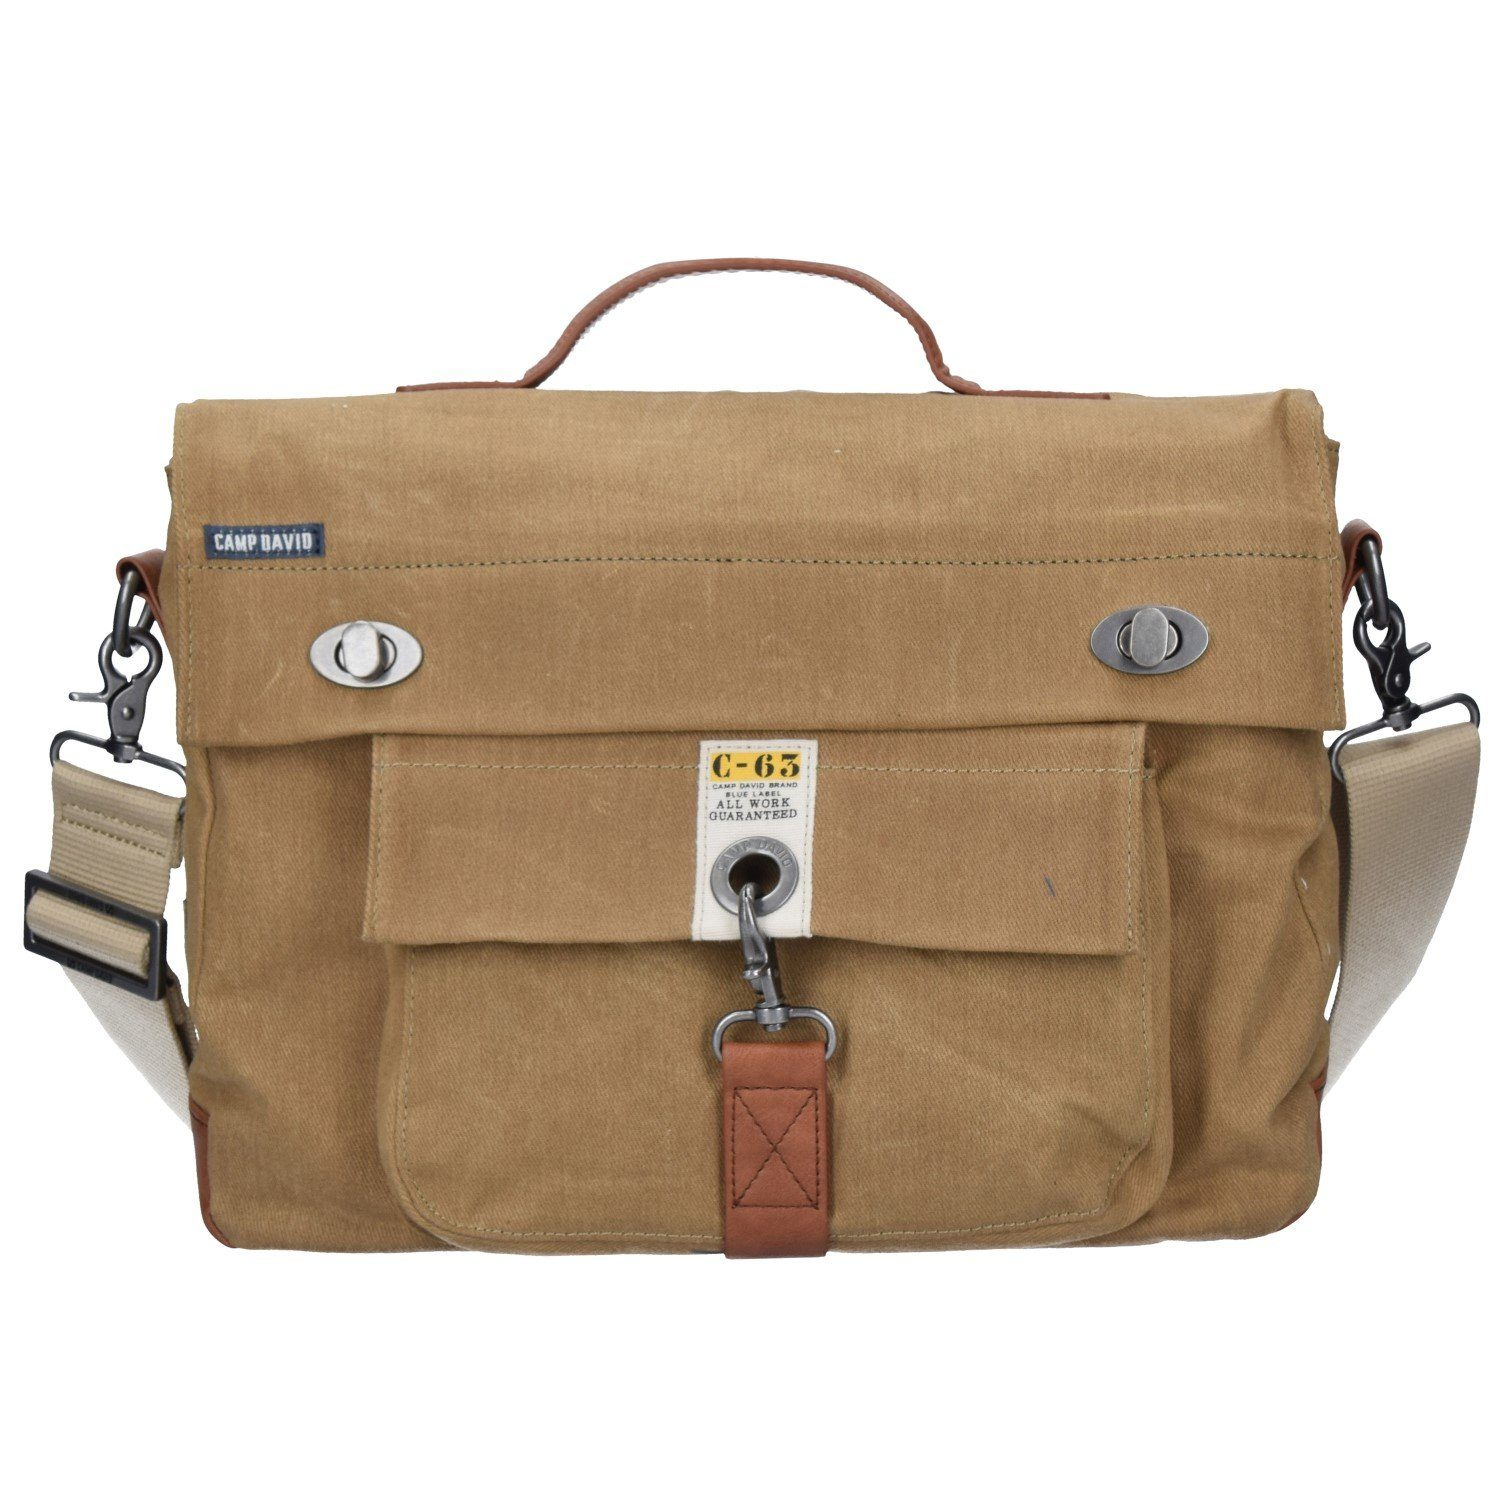 CAMP DAVID Old Harbor Messenger 37,5 cm Laptopfach